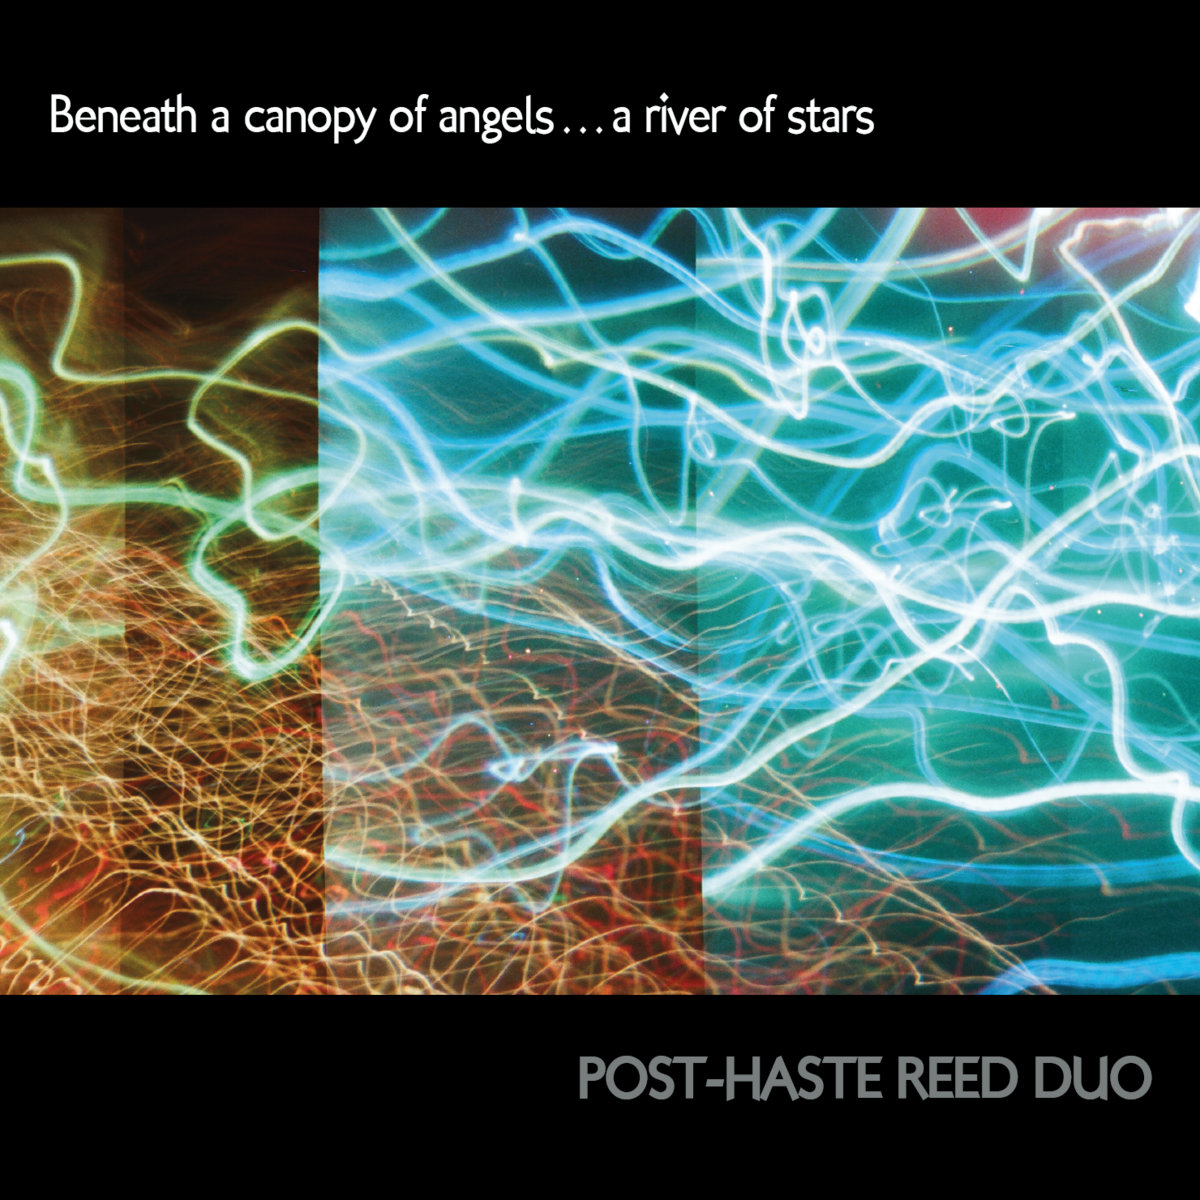 by Post-Haste Reed Duo  sc 1 st  Post-Haste Reed Duo - Bandc& & Beneath a canopy of angelsu2026a river of stars | Post-Haste Reed Duo